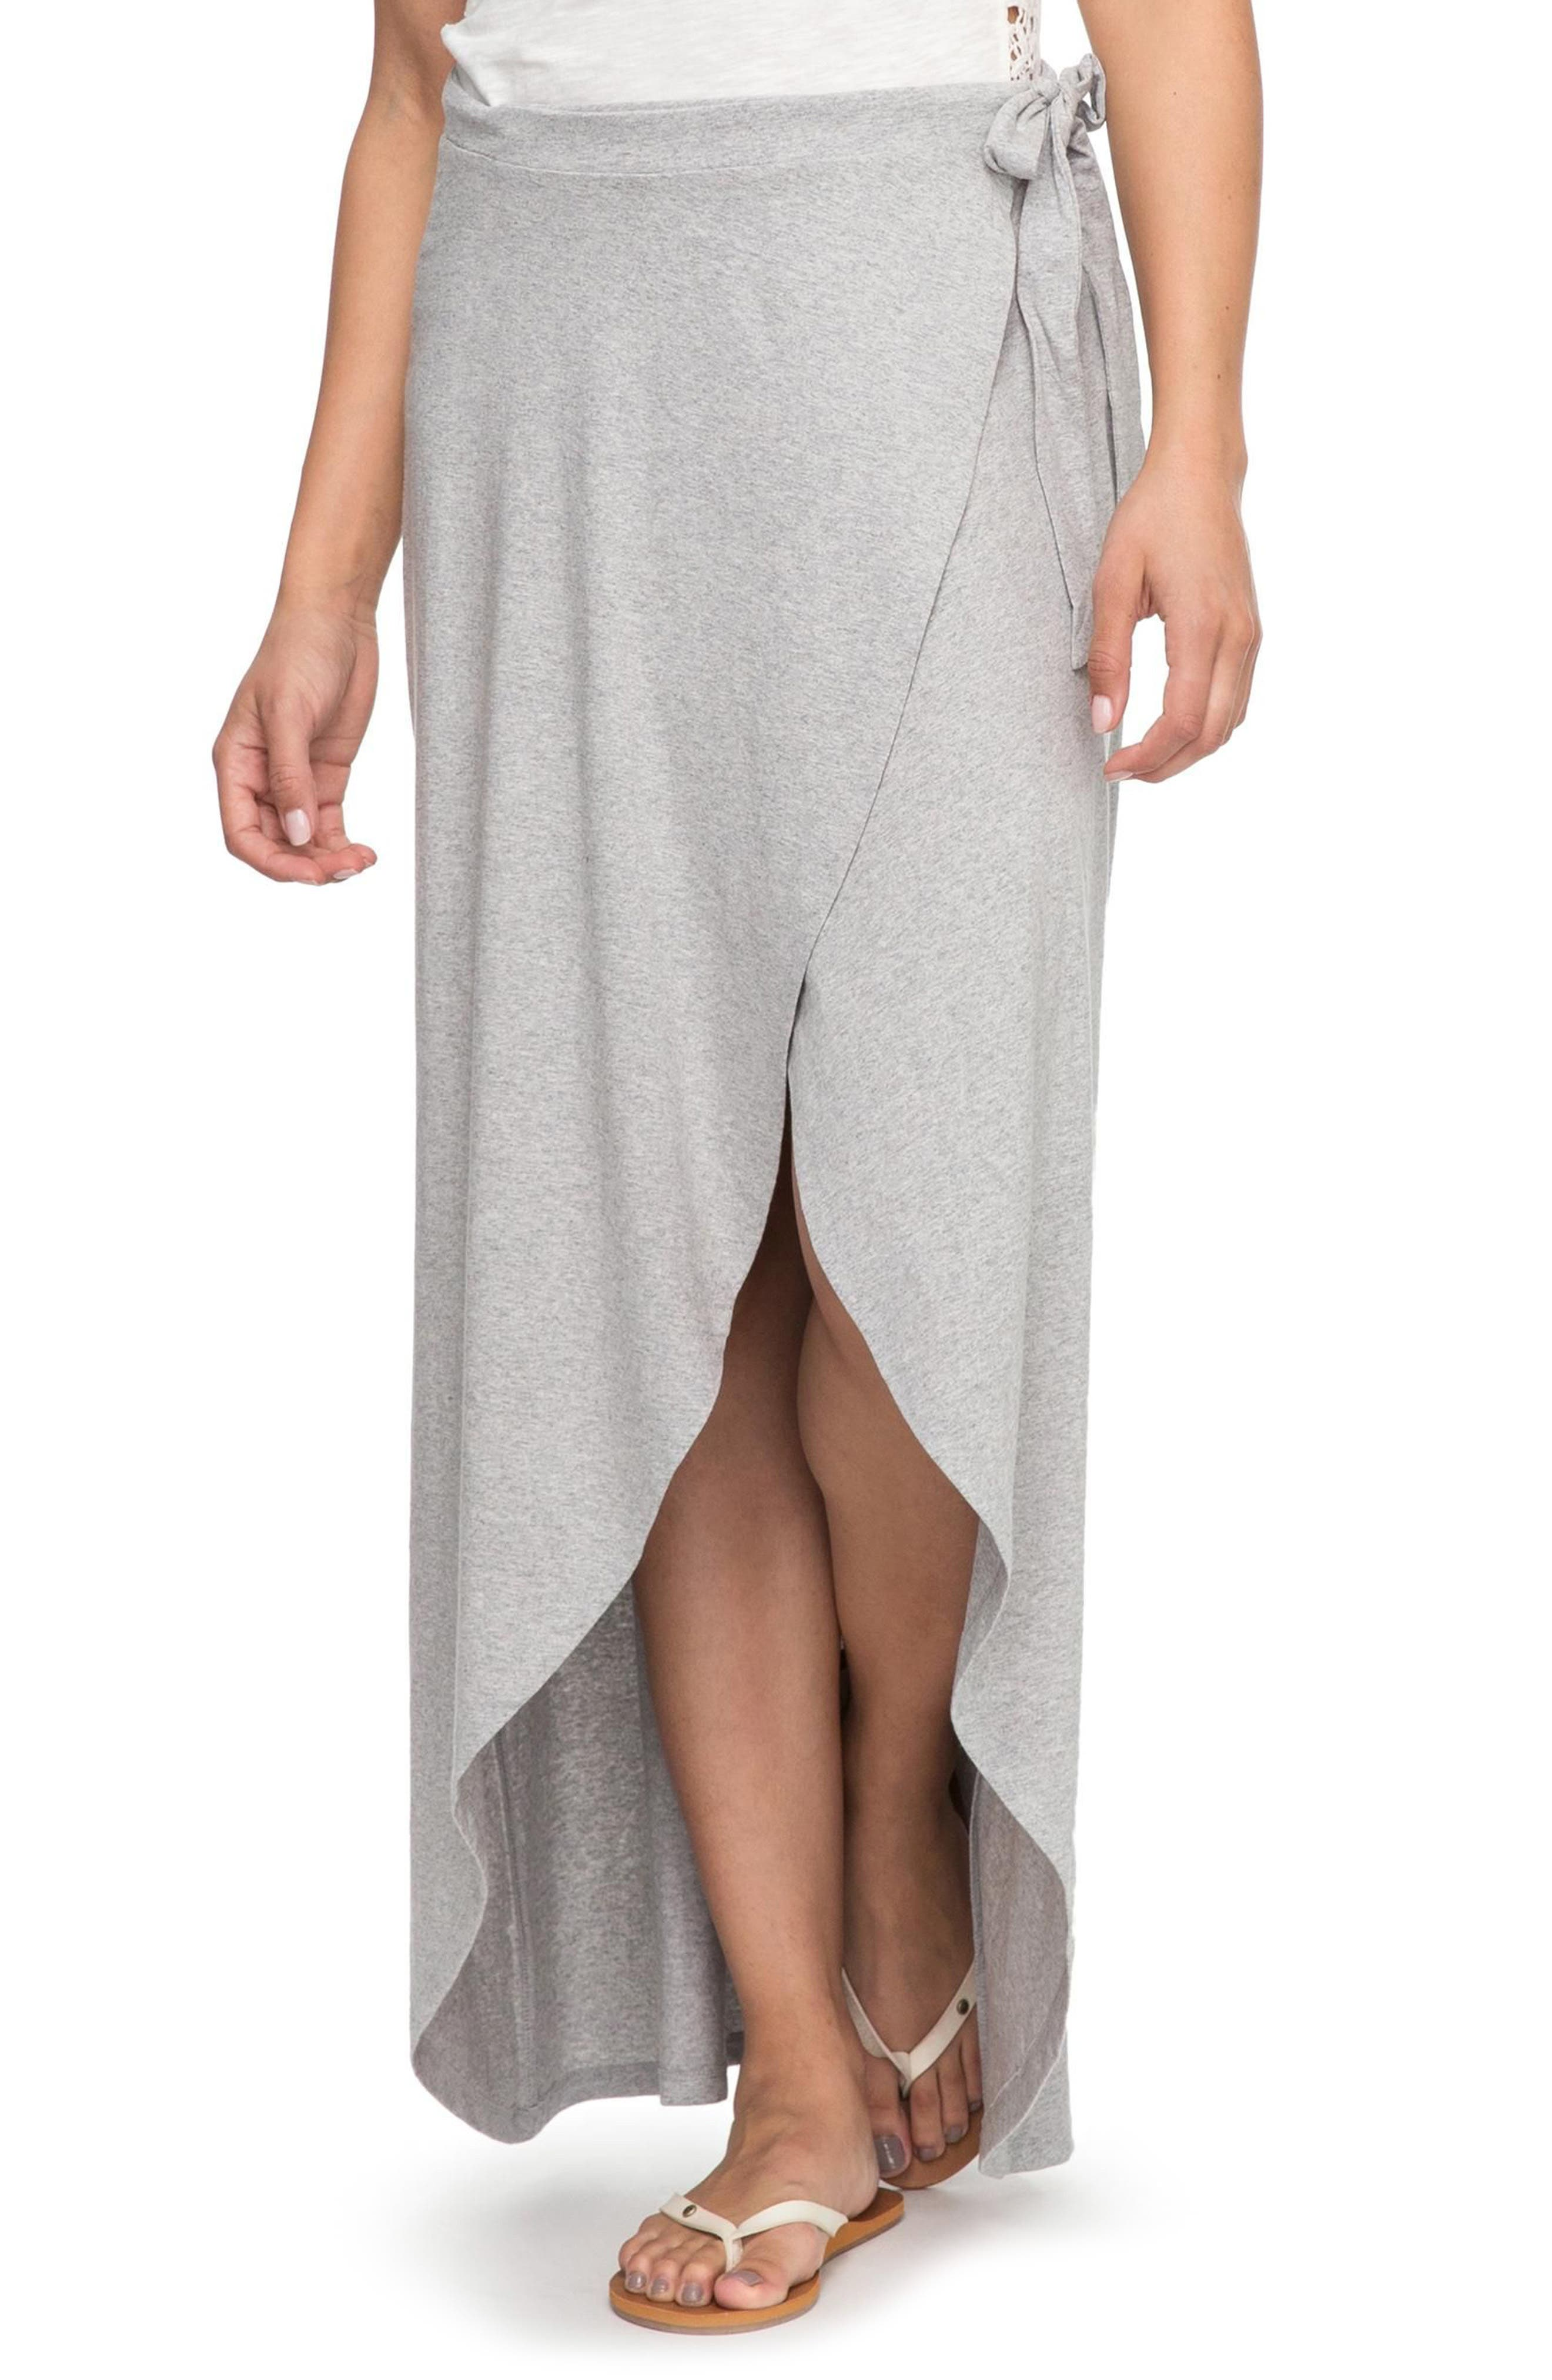 Everlasting Afternoon Long Wrap Skirt,                         Main,                         color, Heritage Heather